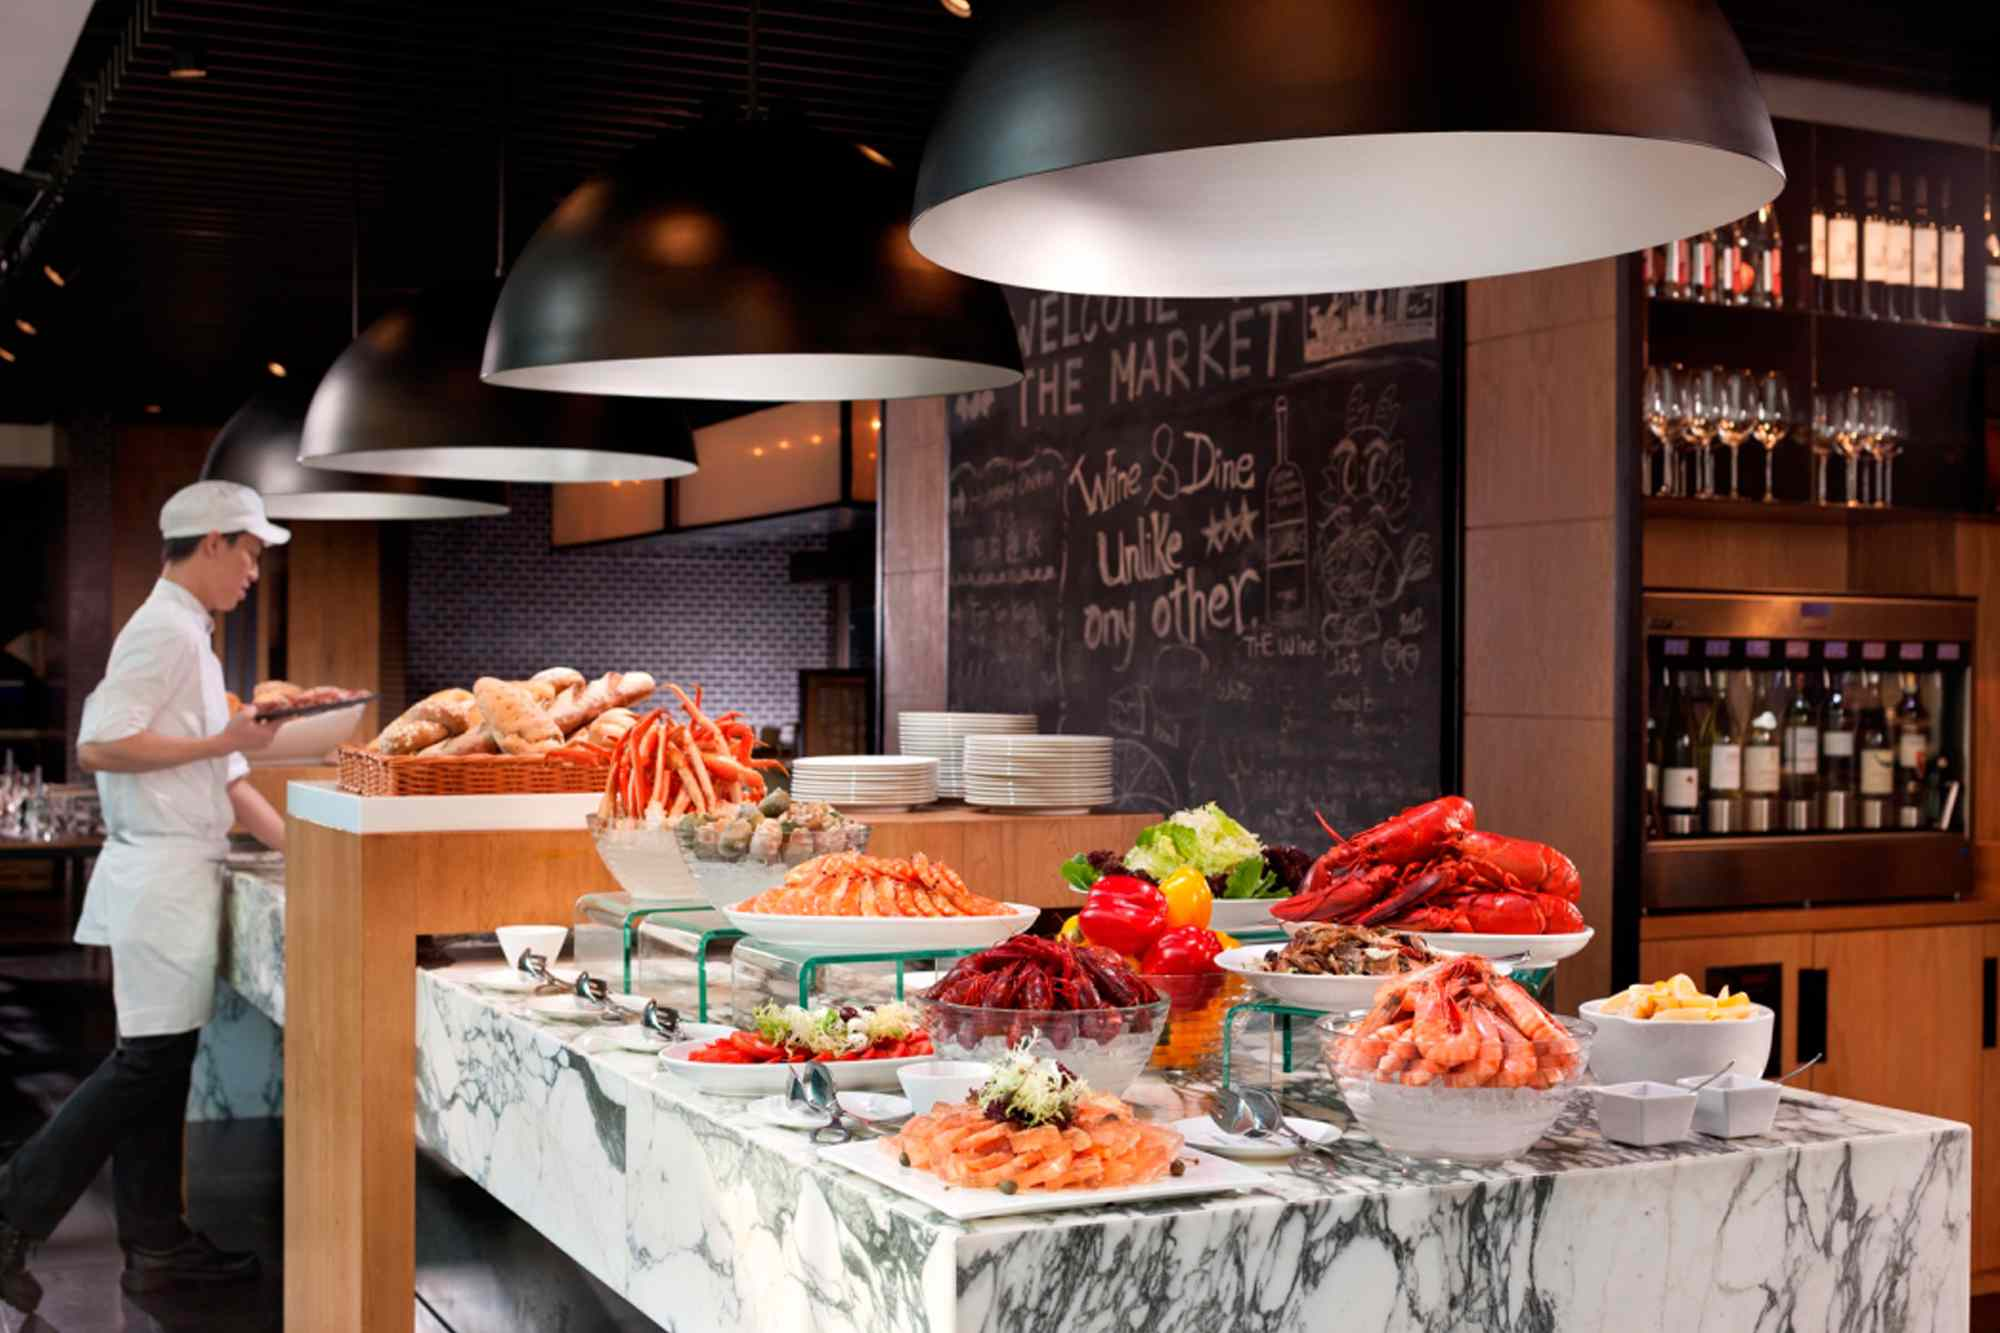 The buffet at The Market in Hotel ICON Hong Kong